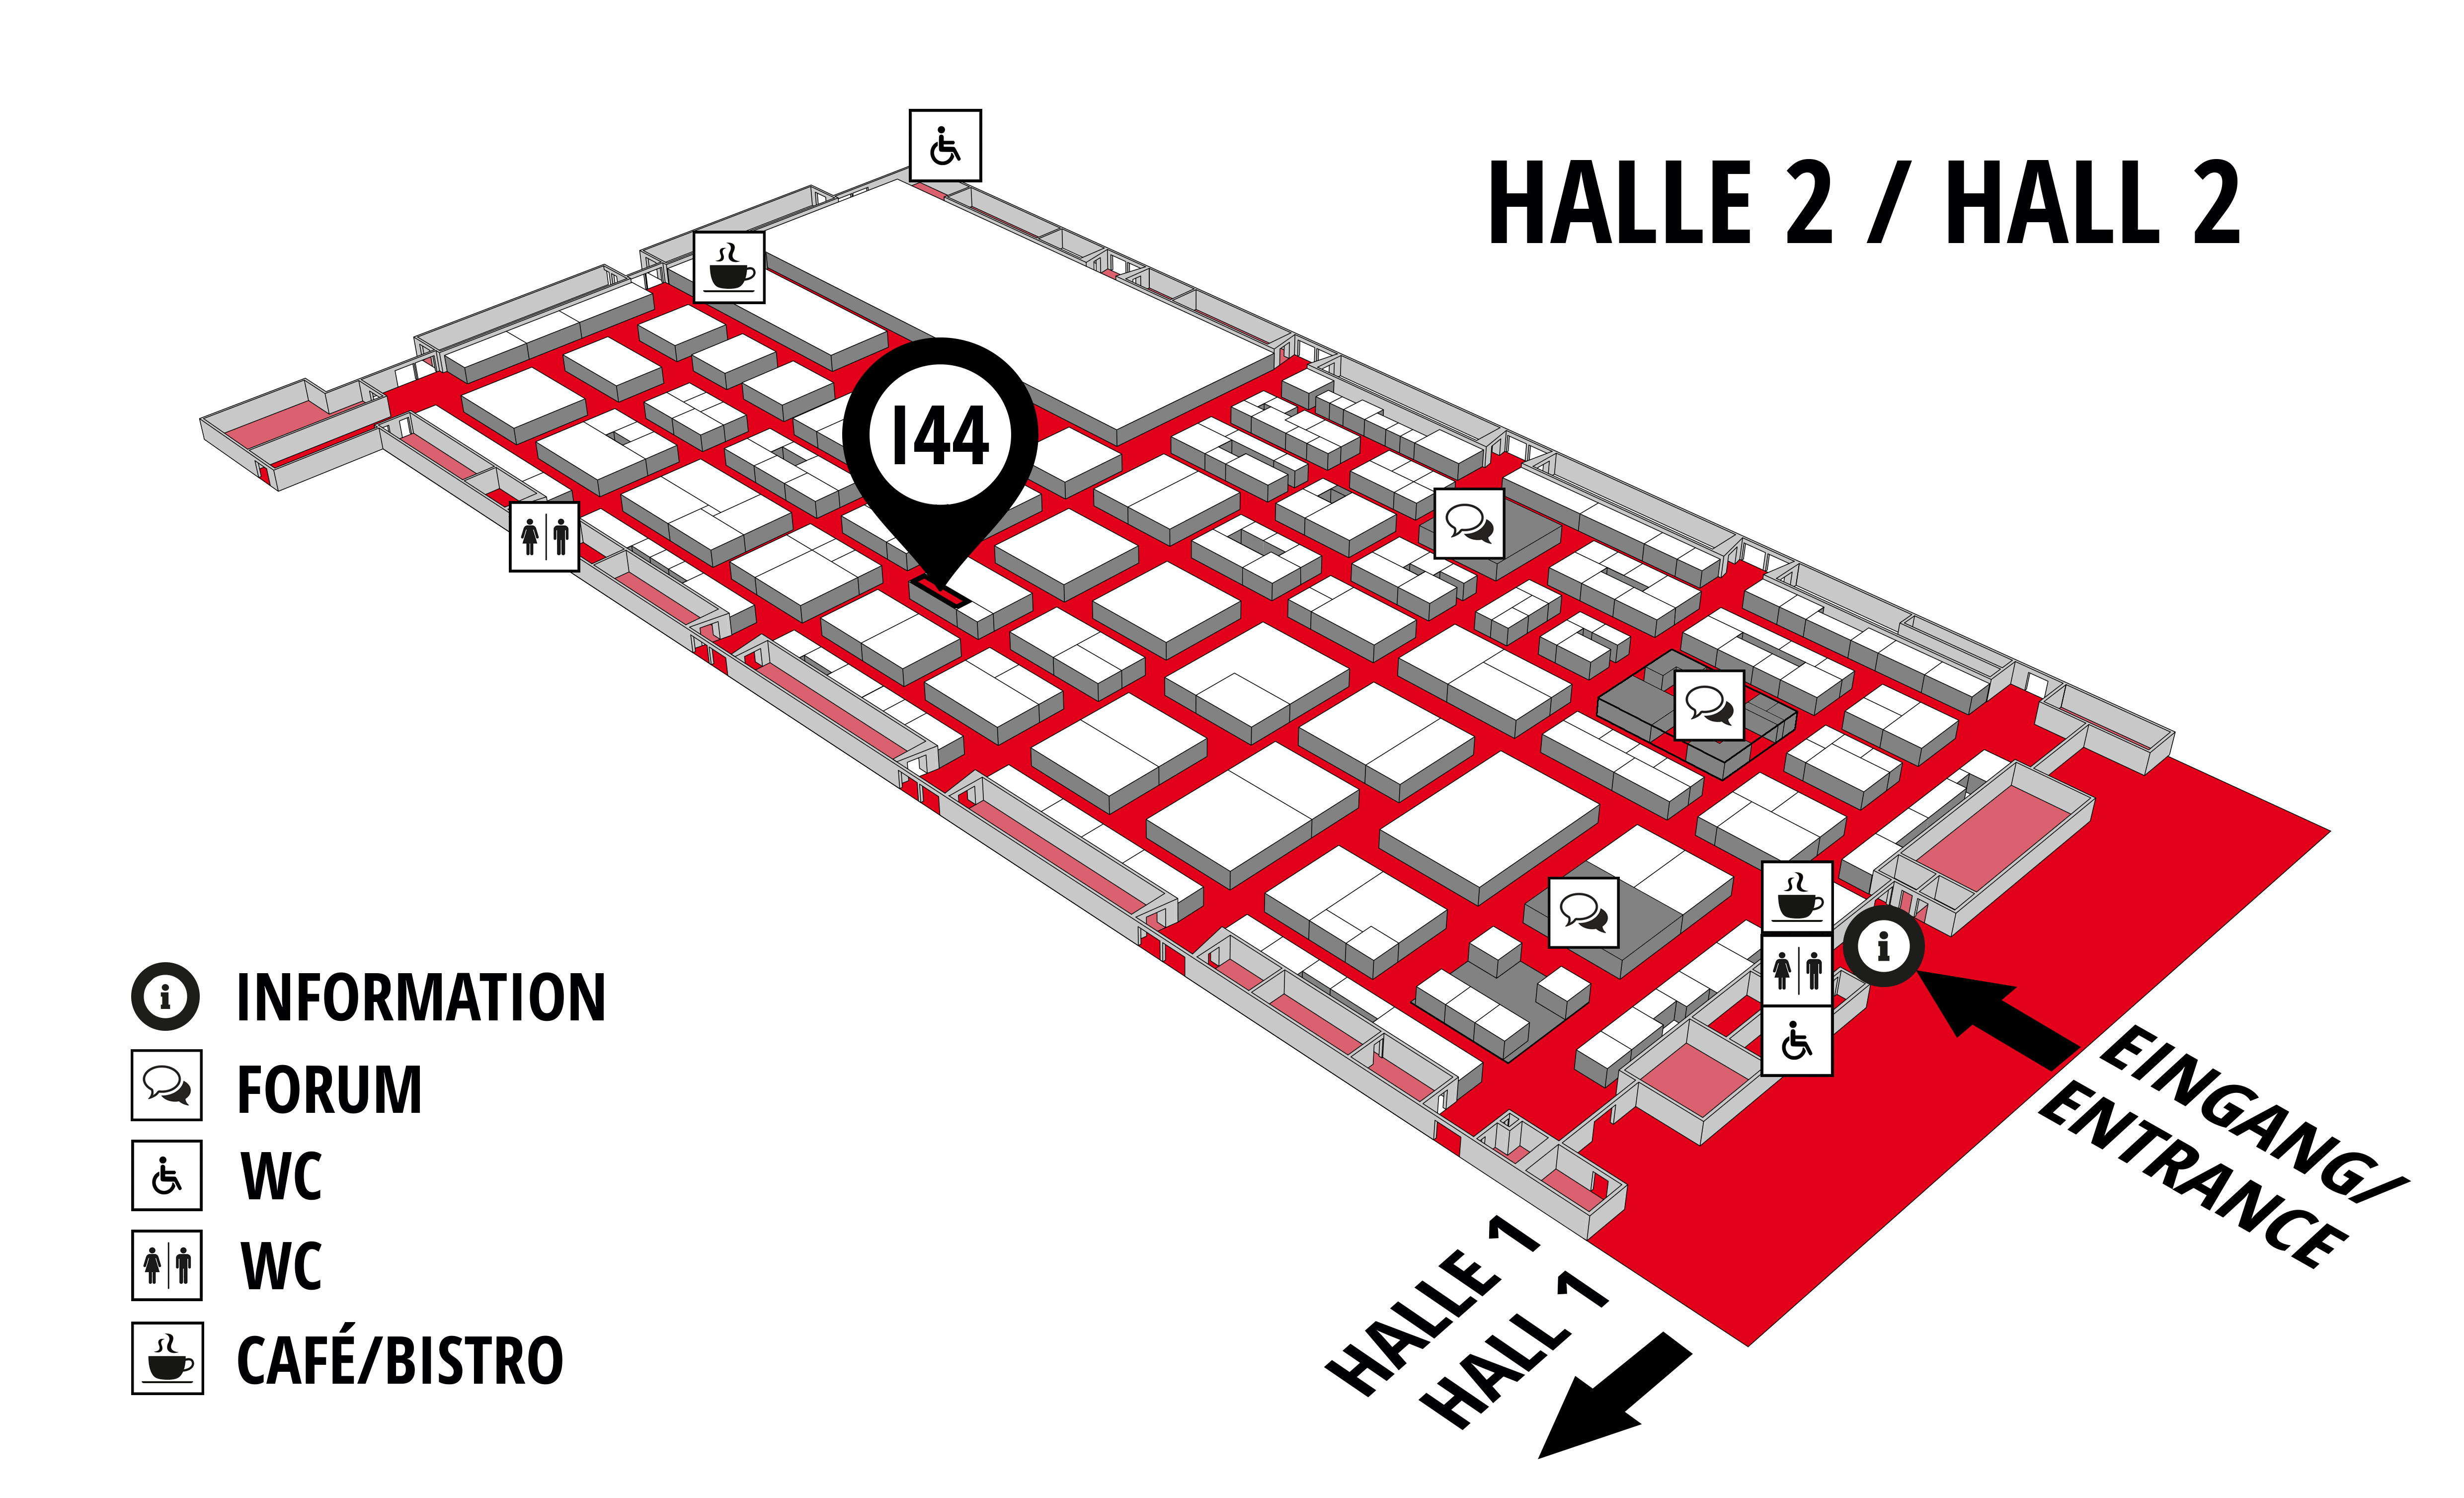 REHAB - Rehabilitation | Therapy | Care | Inclusion hall map (Hall 2): stand i44